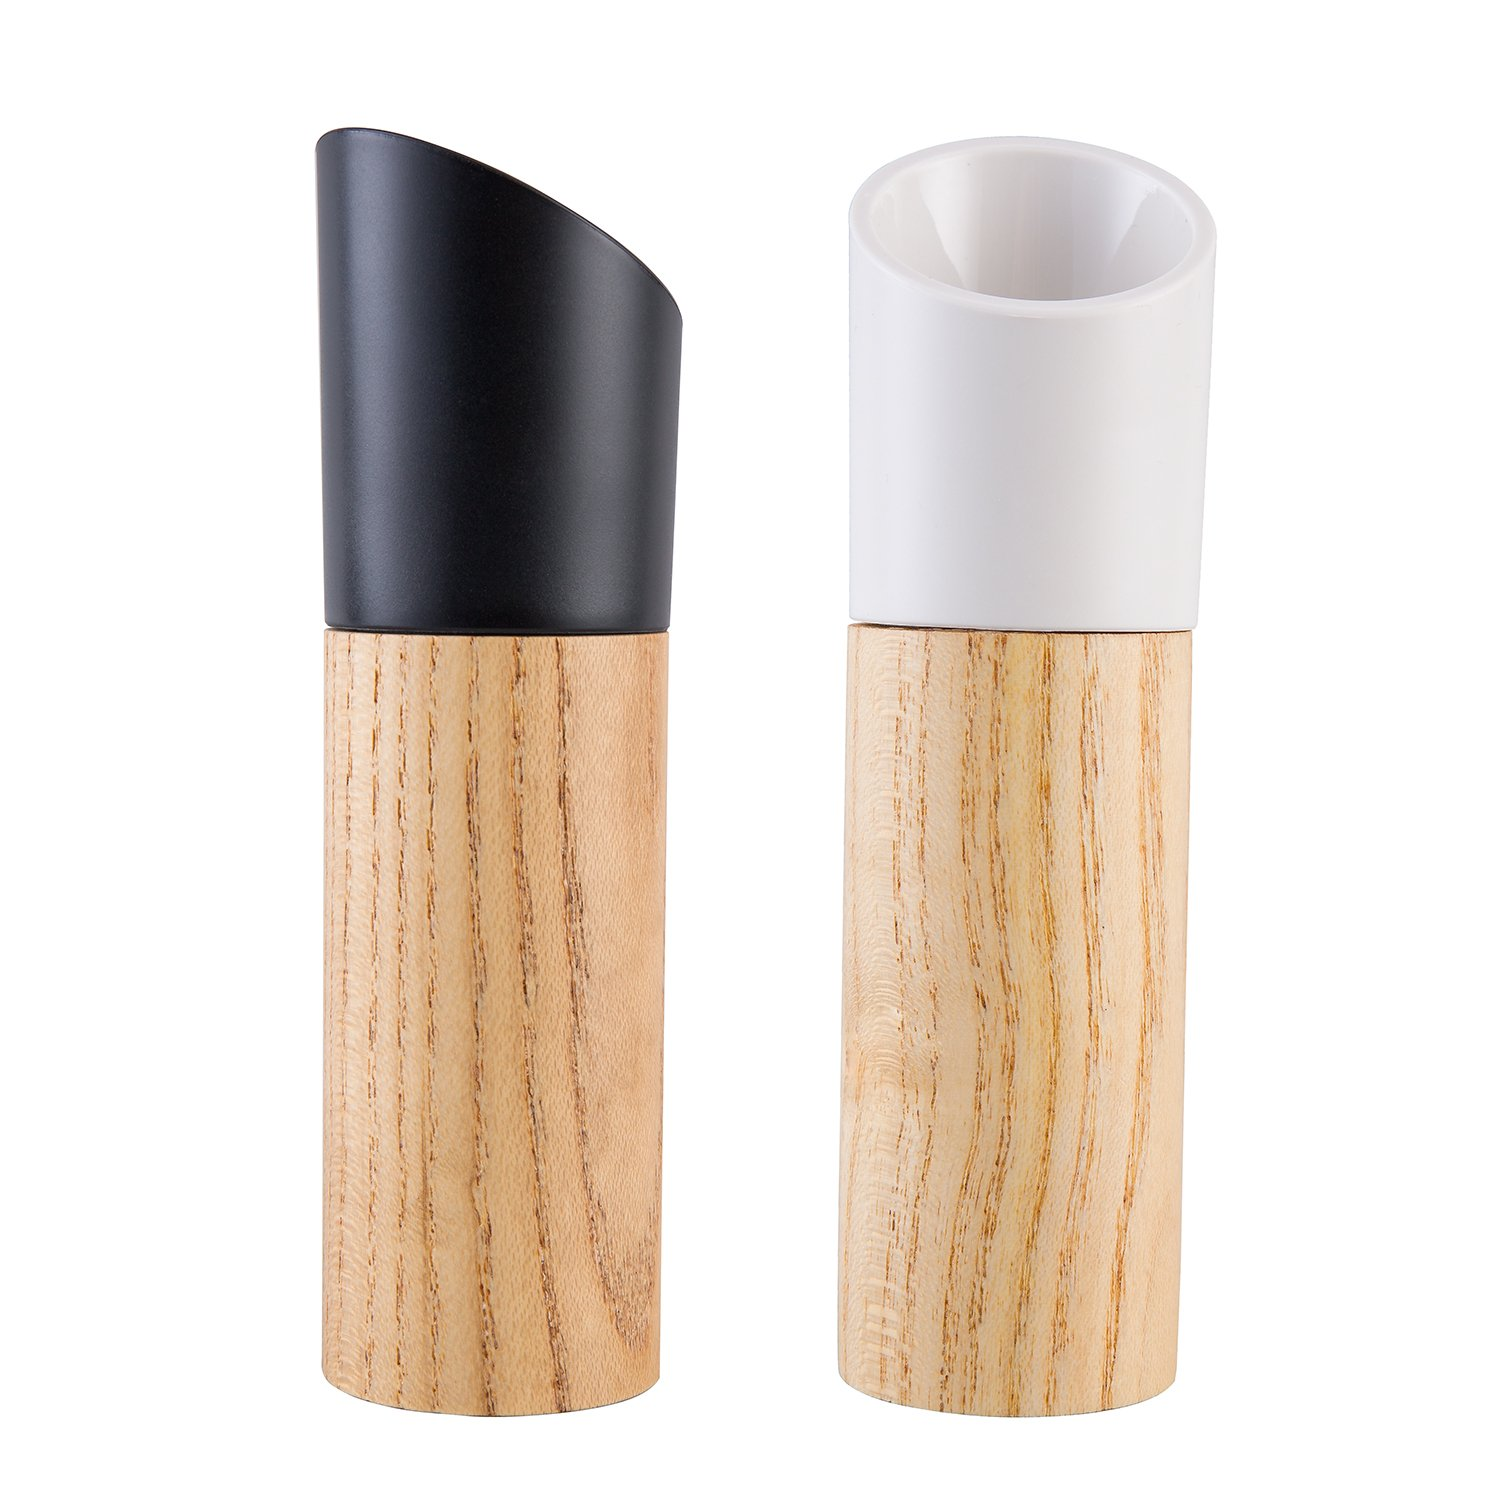 GRACE Wood Salt and Pepper Grinder Set of 2-Salt and Pepper Shakers with Adjustable Ceramic Rotor-Pepper Mill and Salt Mill By